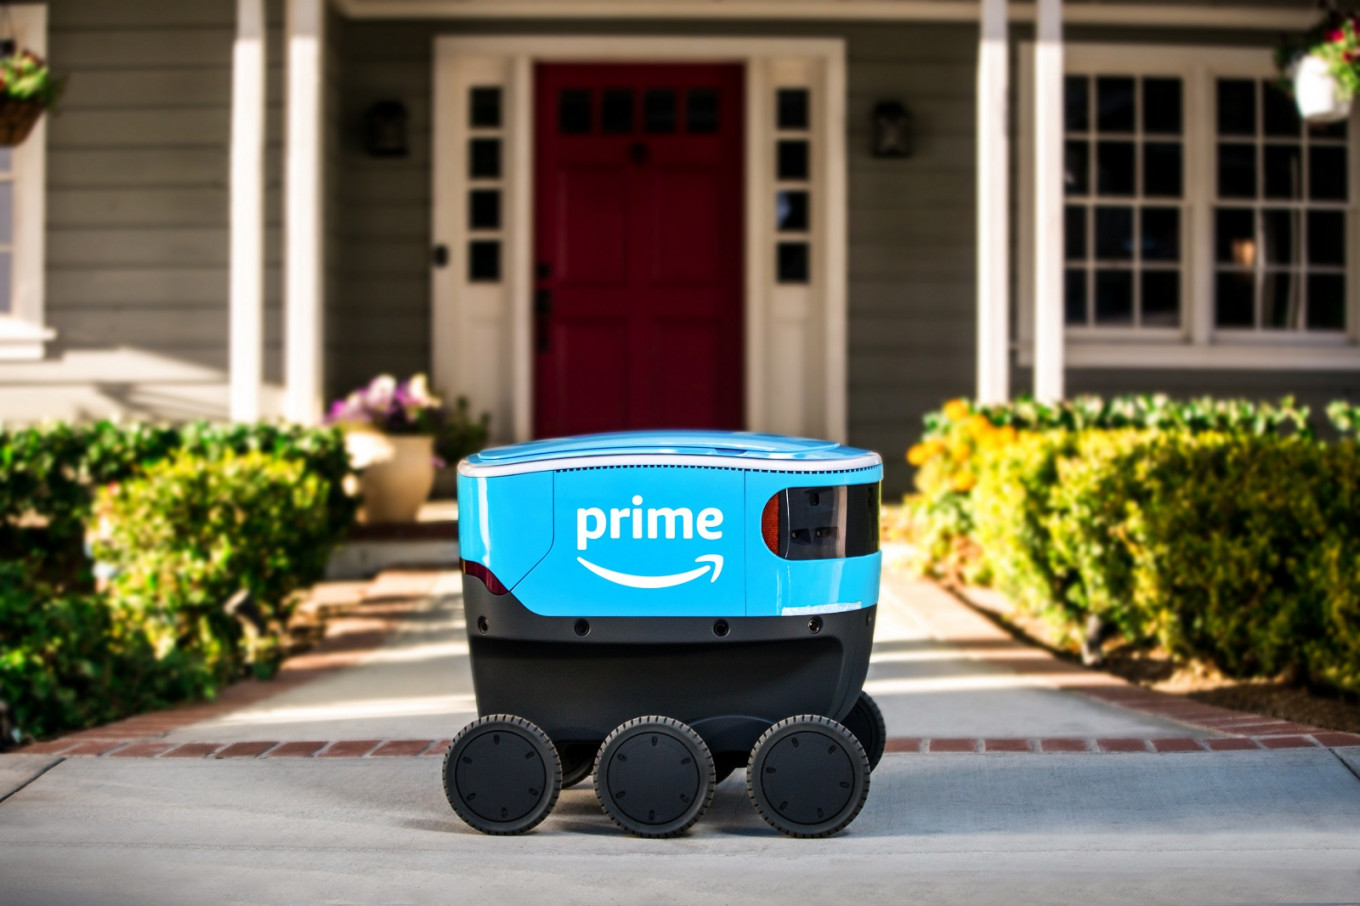 What has six wheels and makes Amazon deliveries?